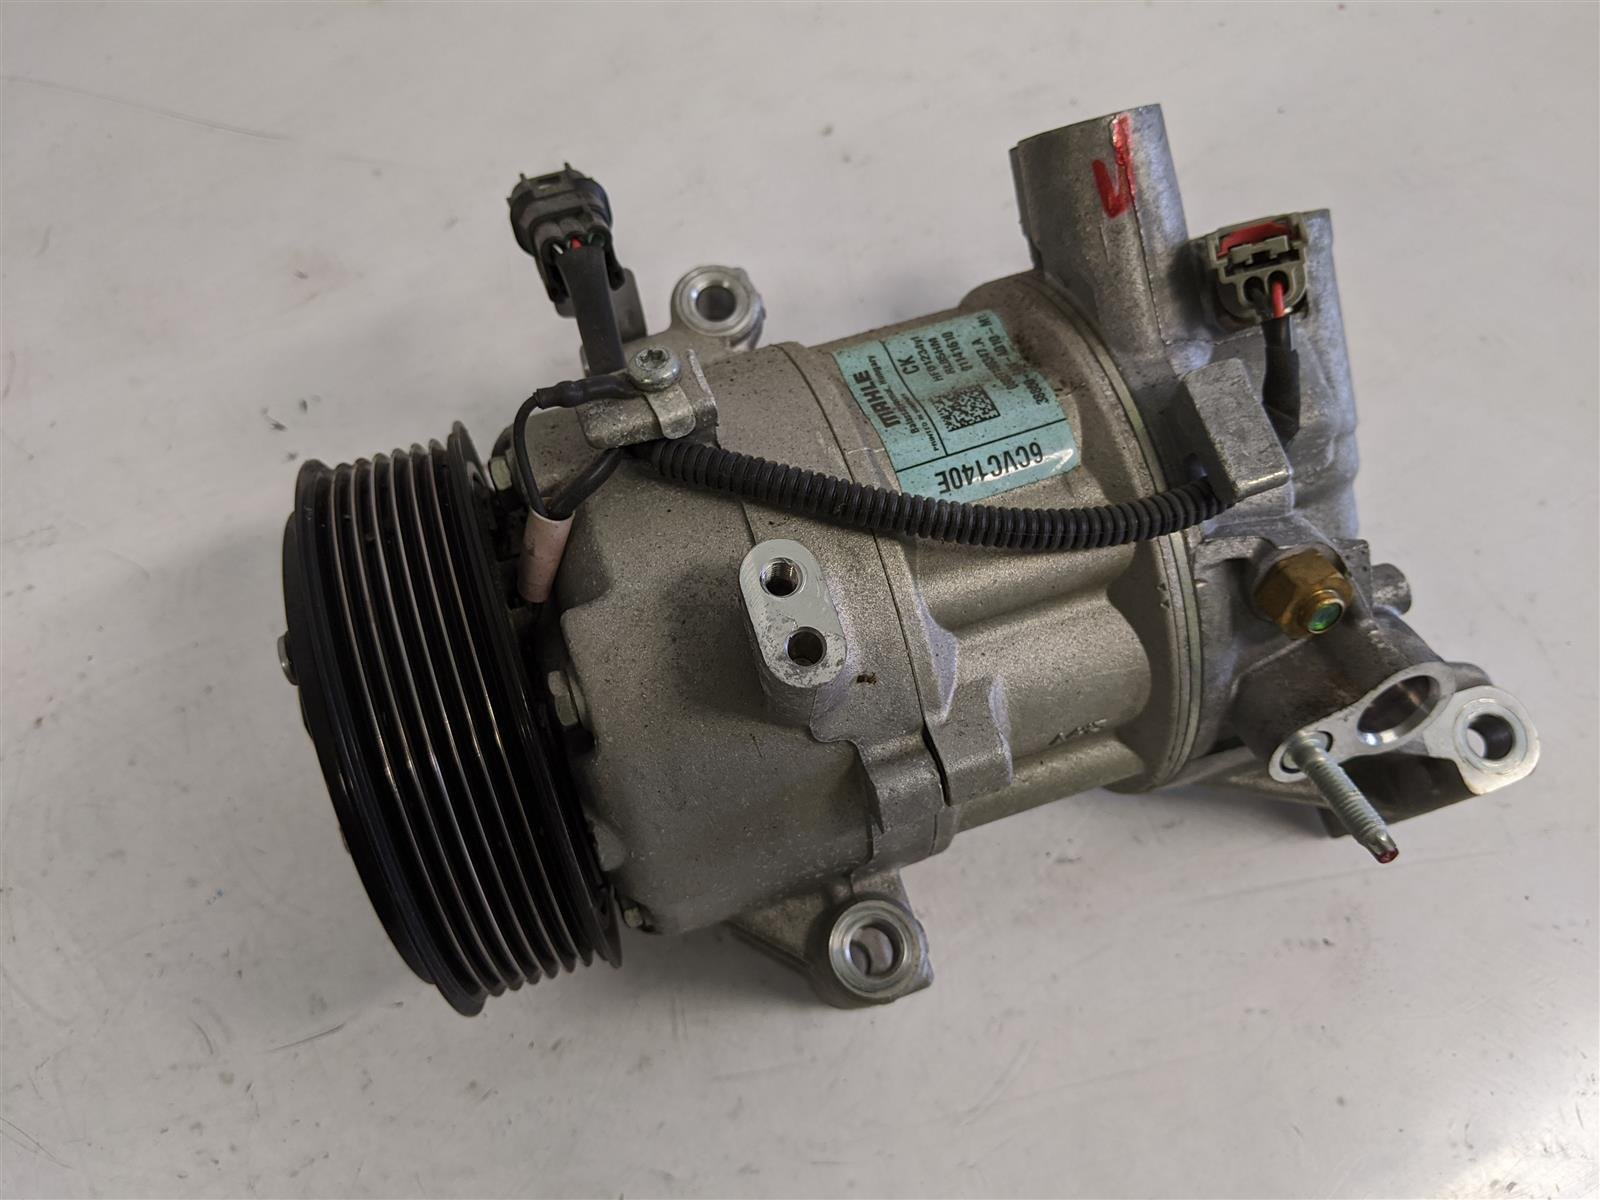 2018 Honda Civic 1.5l Ac Compressor Replacement